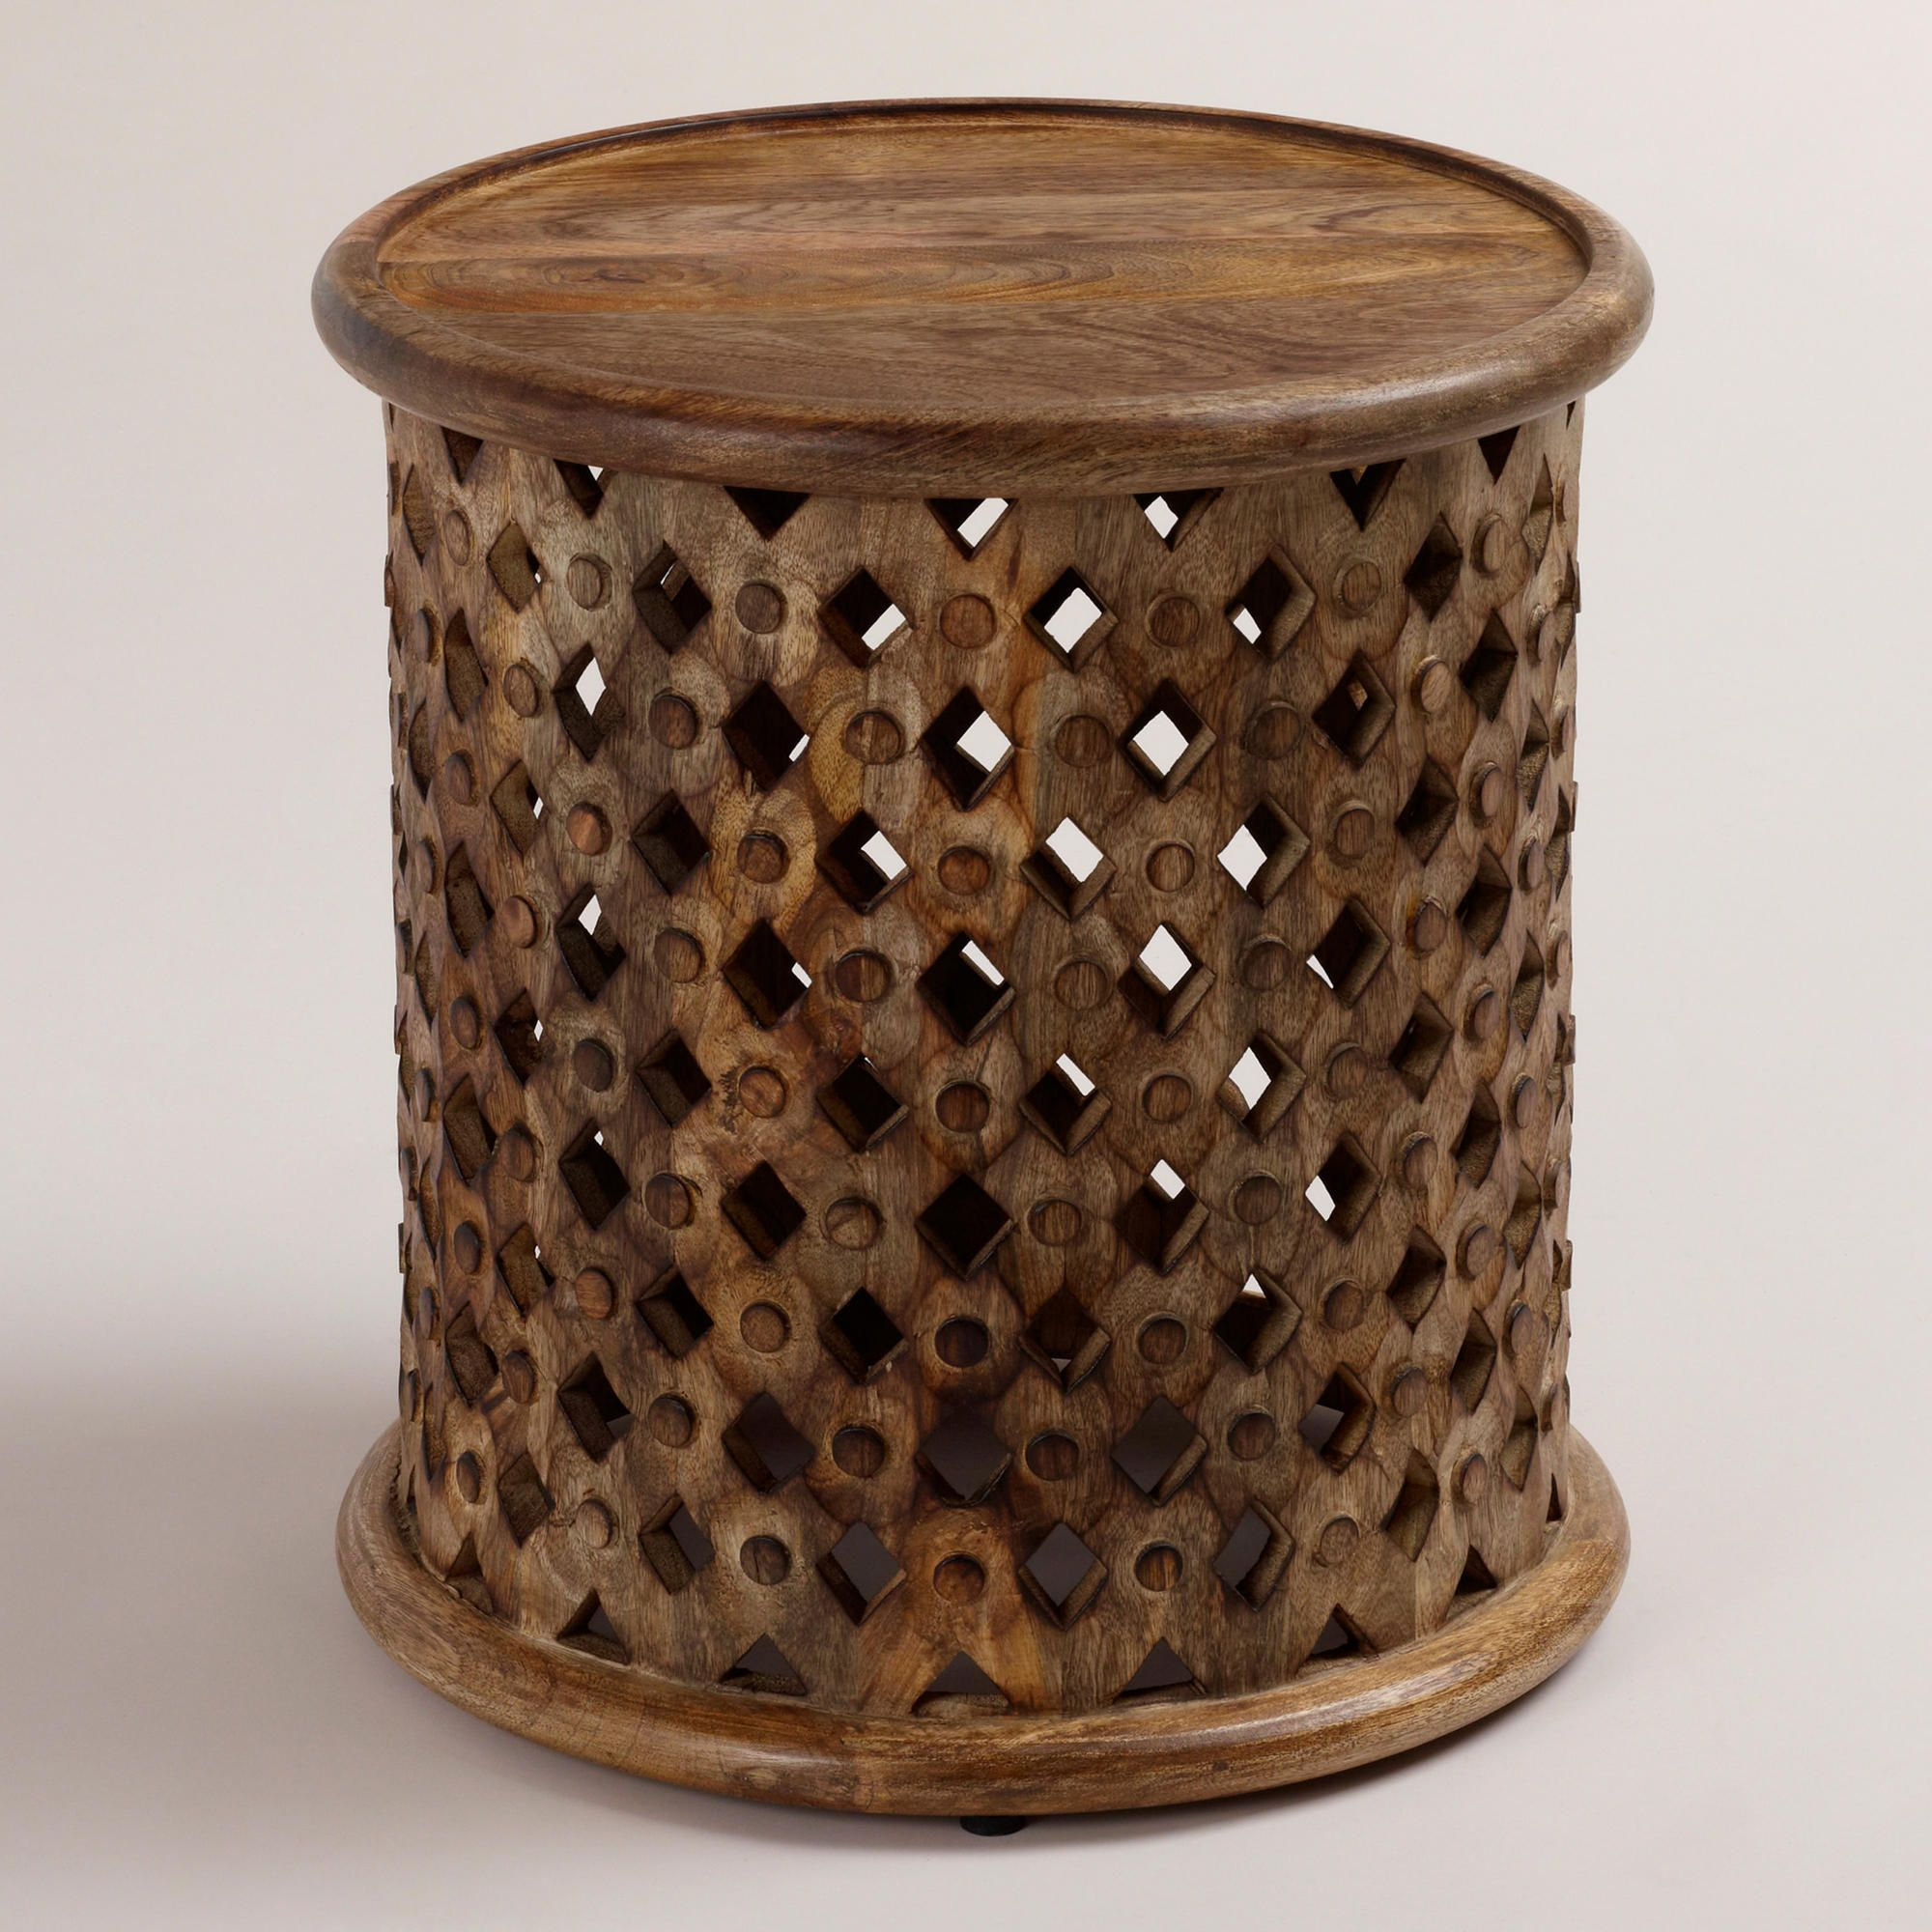 tribal carved wood accent table world market this would quatrefoil look great bedroom next the chair vintage style end tables occasional inch side small corner living room patio